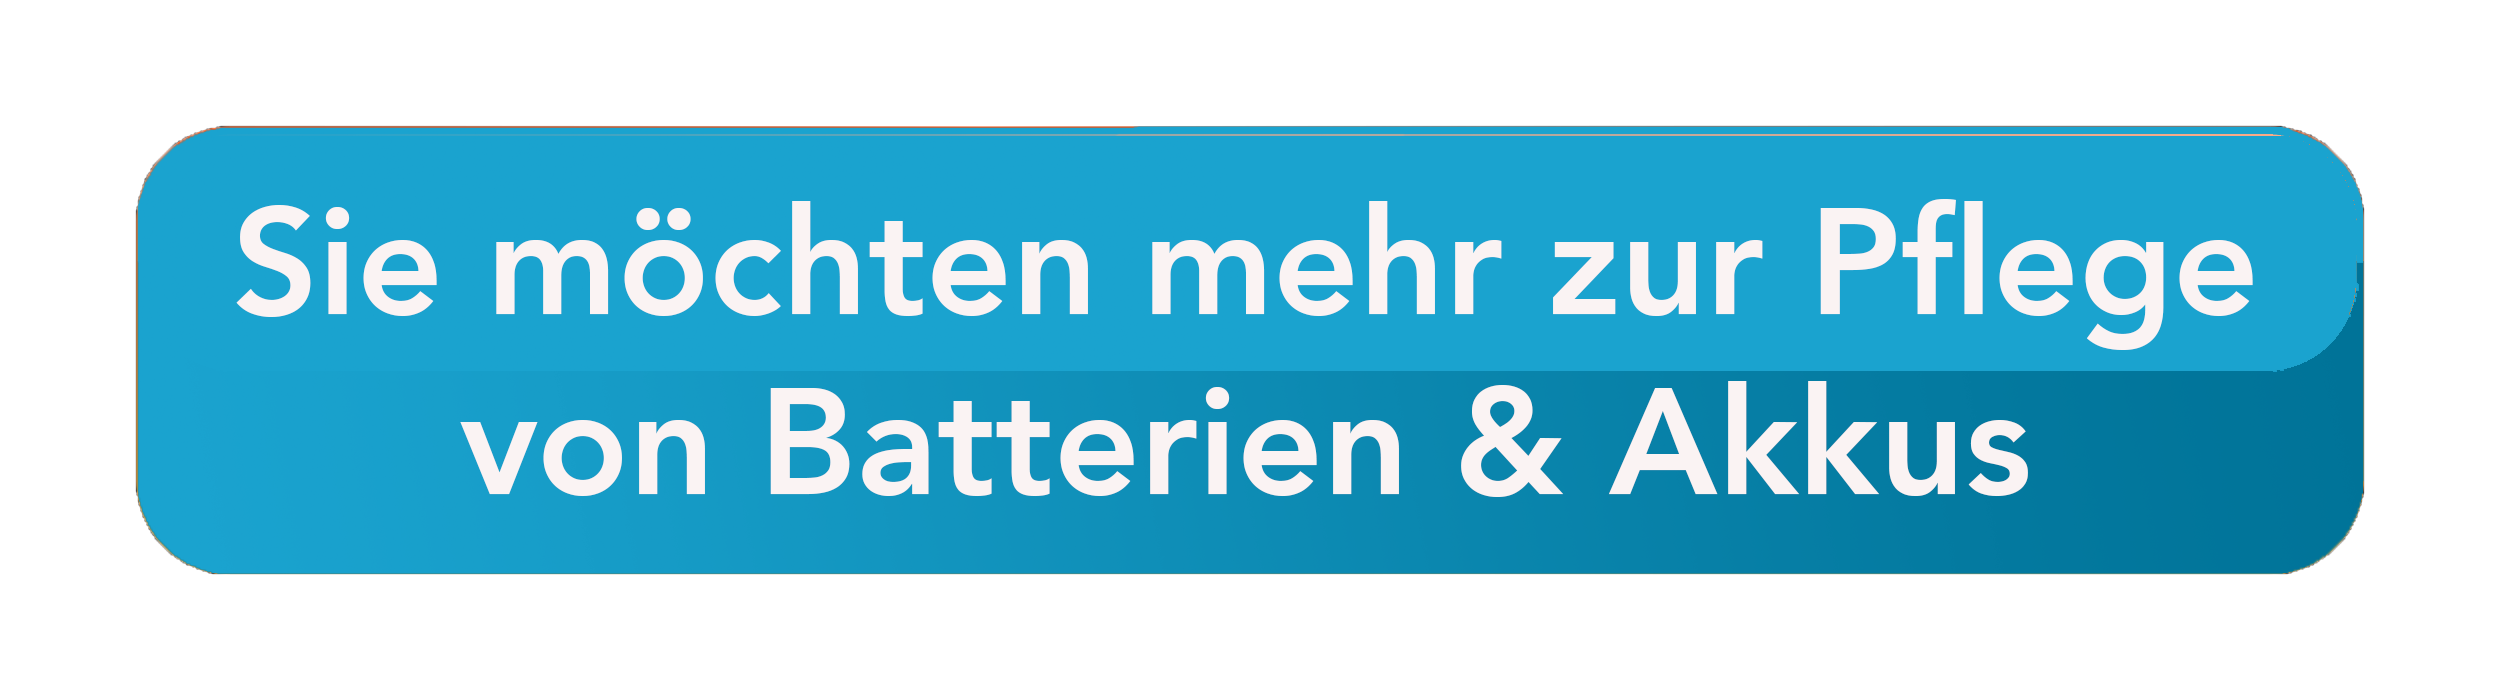 Pfelge-und-Wartung-Elektromobile-Scootter-HMMso-Button